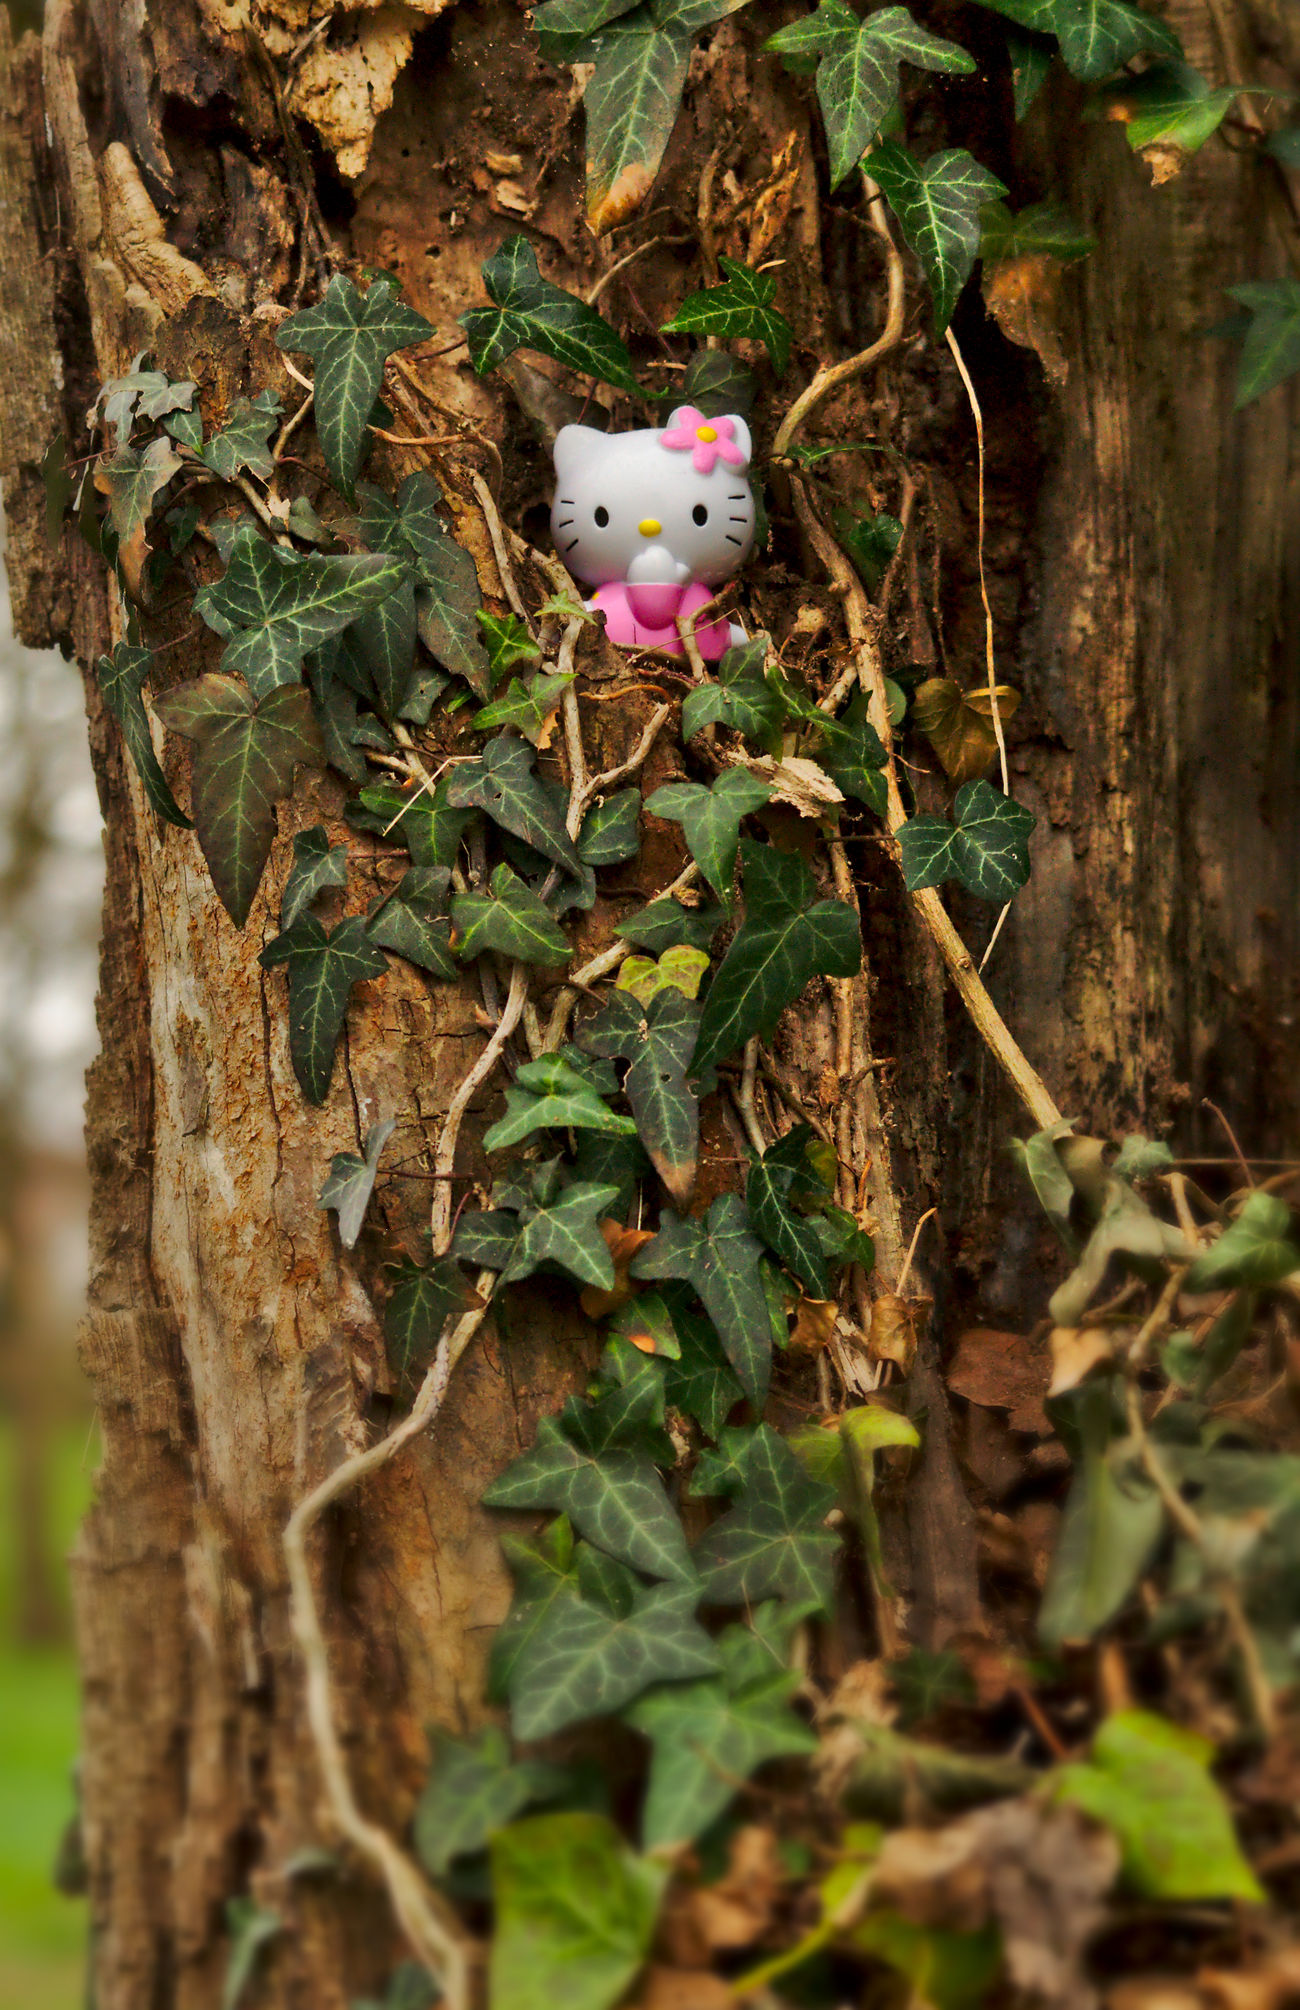 Hello Kitty in the trees Brown Fantasy Figure Green Hello Kitty Ivy Leaf Light And Shadow Loneliness Lost Low Angle View Nature Nikon Old Tree Outdoors Pink Pink Color Telling Stories Differently Toy Toy Adventures Tree Wilderness Wood ハローキティ Millennial Pink The Secret Spaces